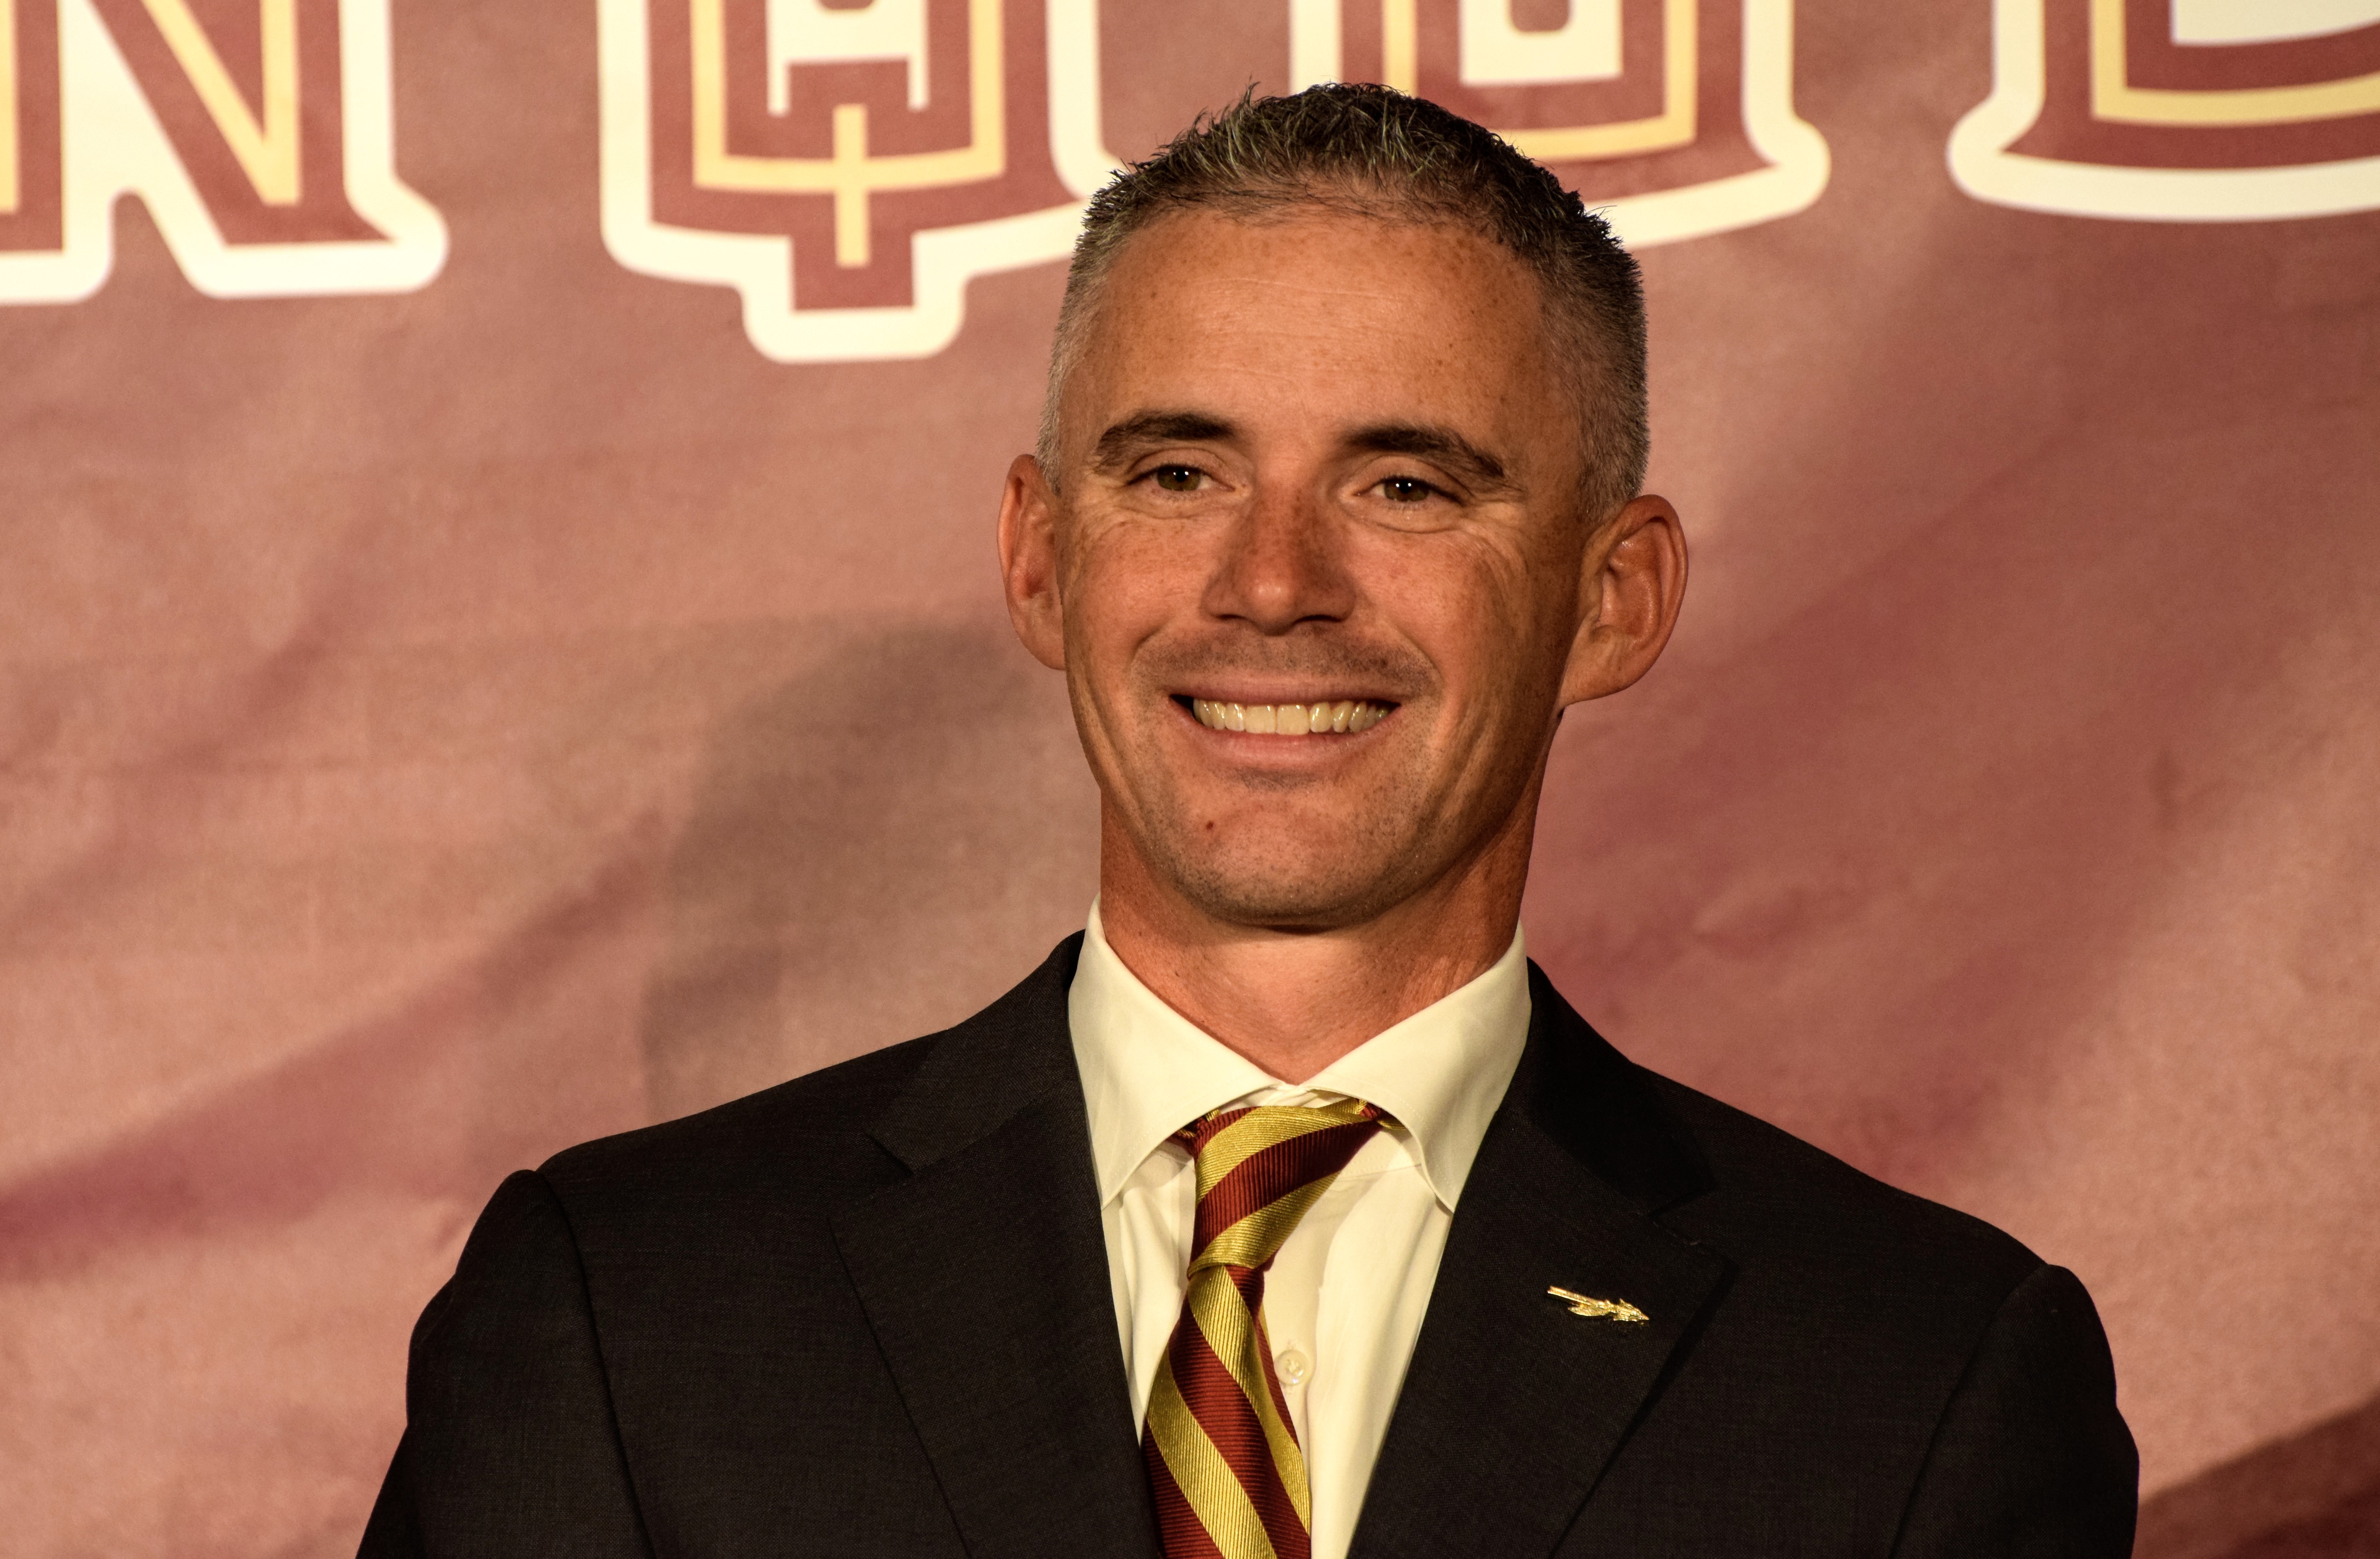 Mike Norvell